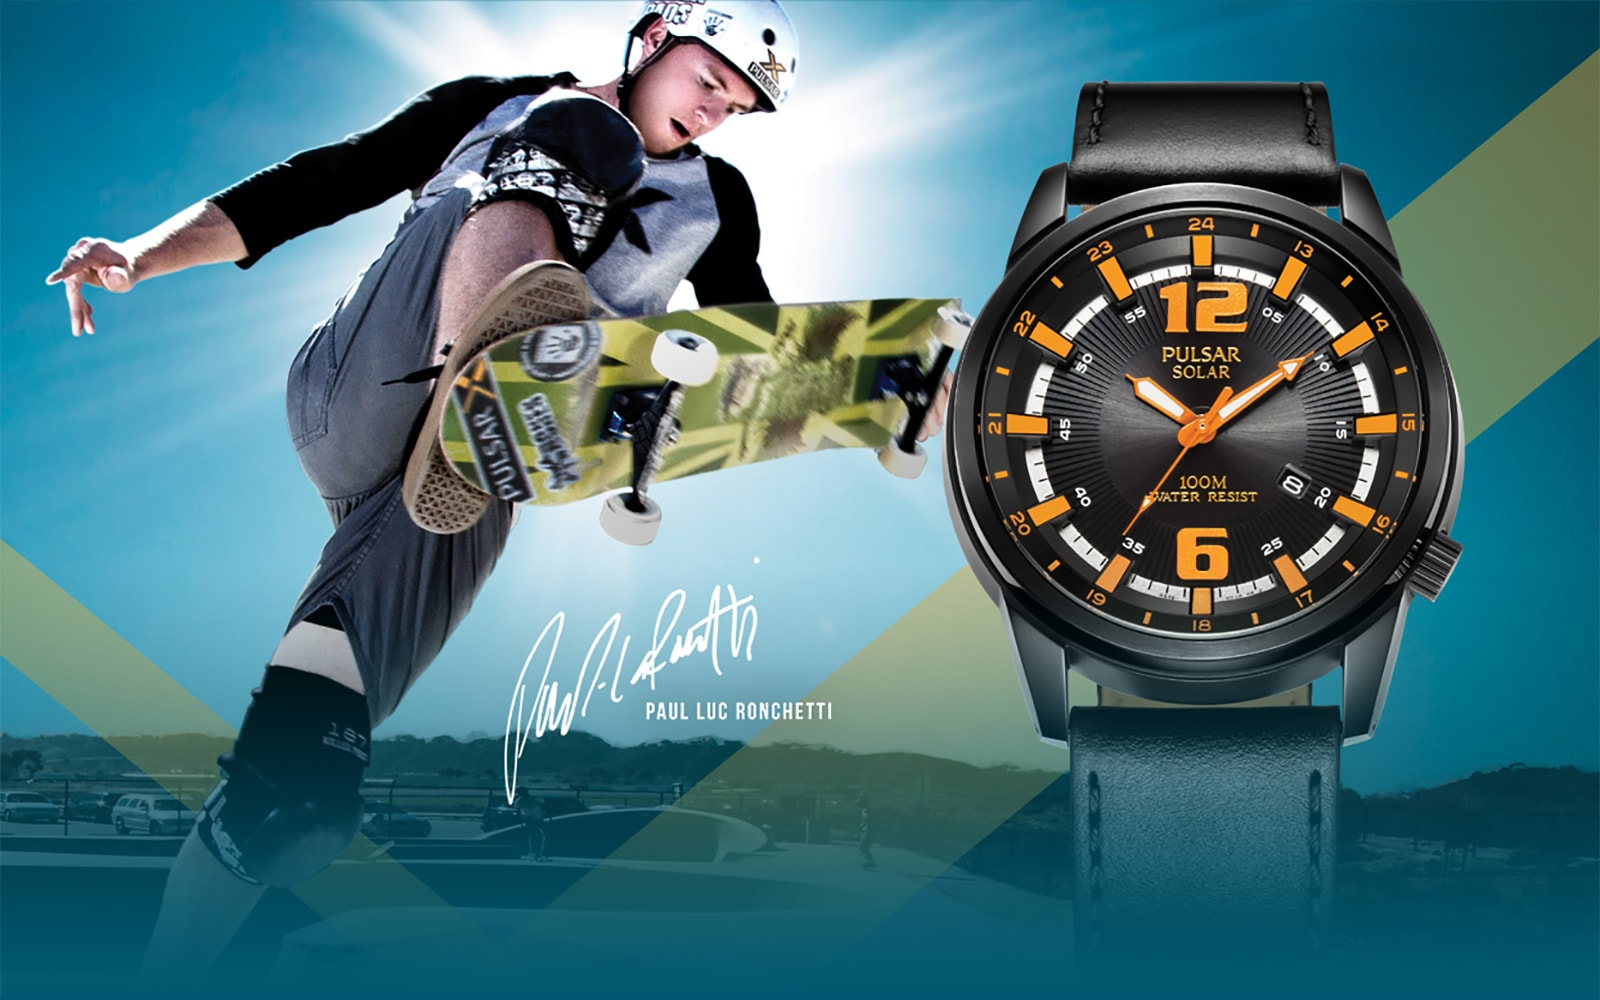 Pulsar-X Solar timepiece adjacent to Paul Luc Ronchetti, skateboarding professional